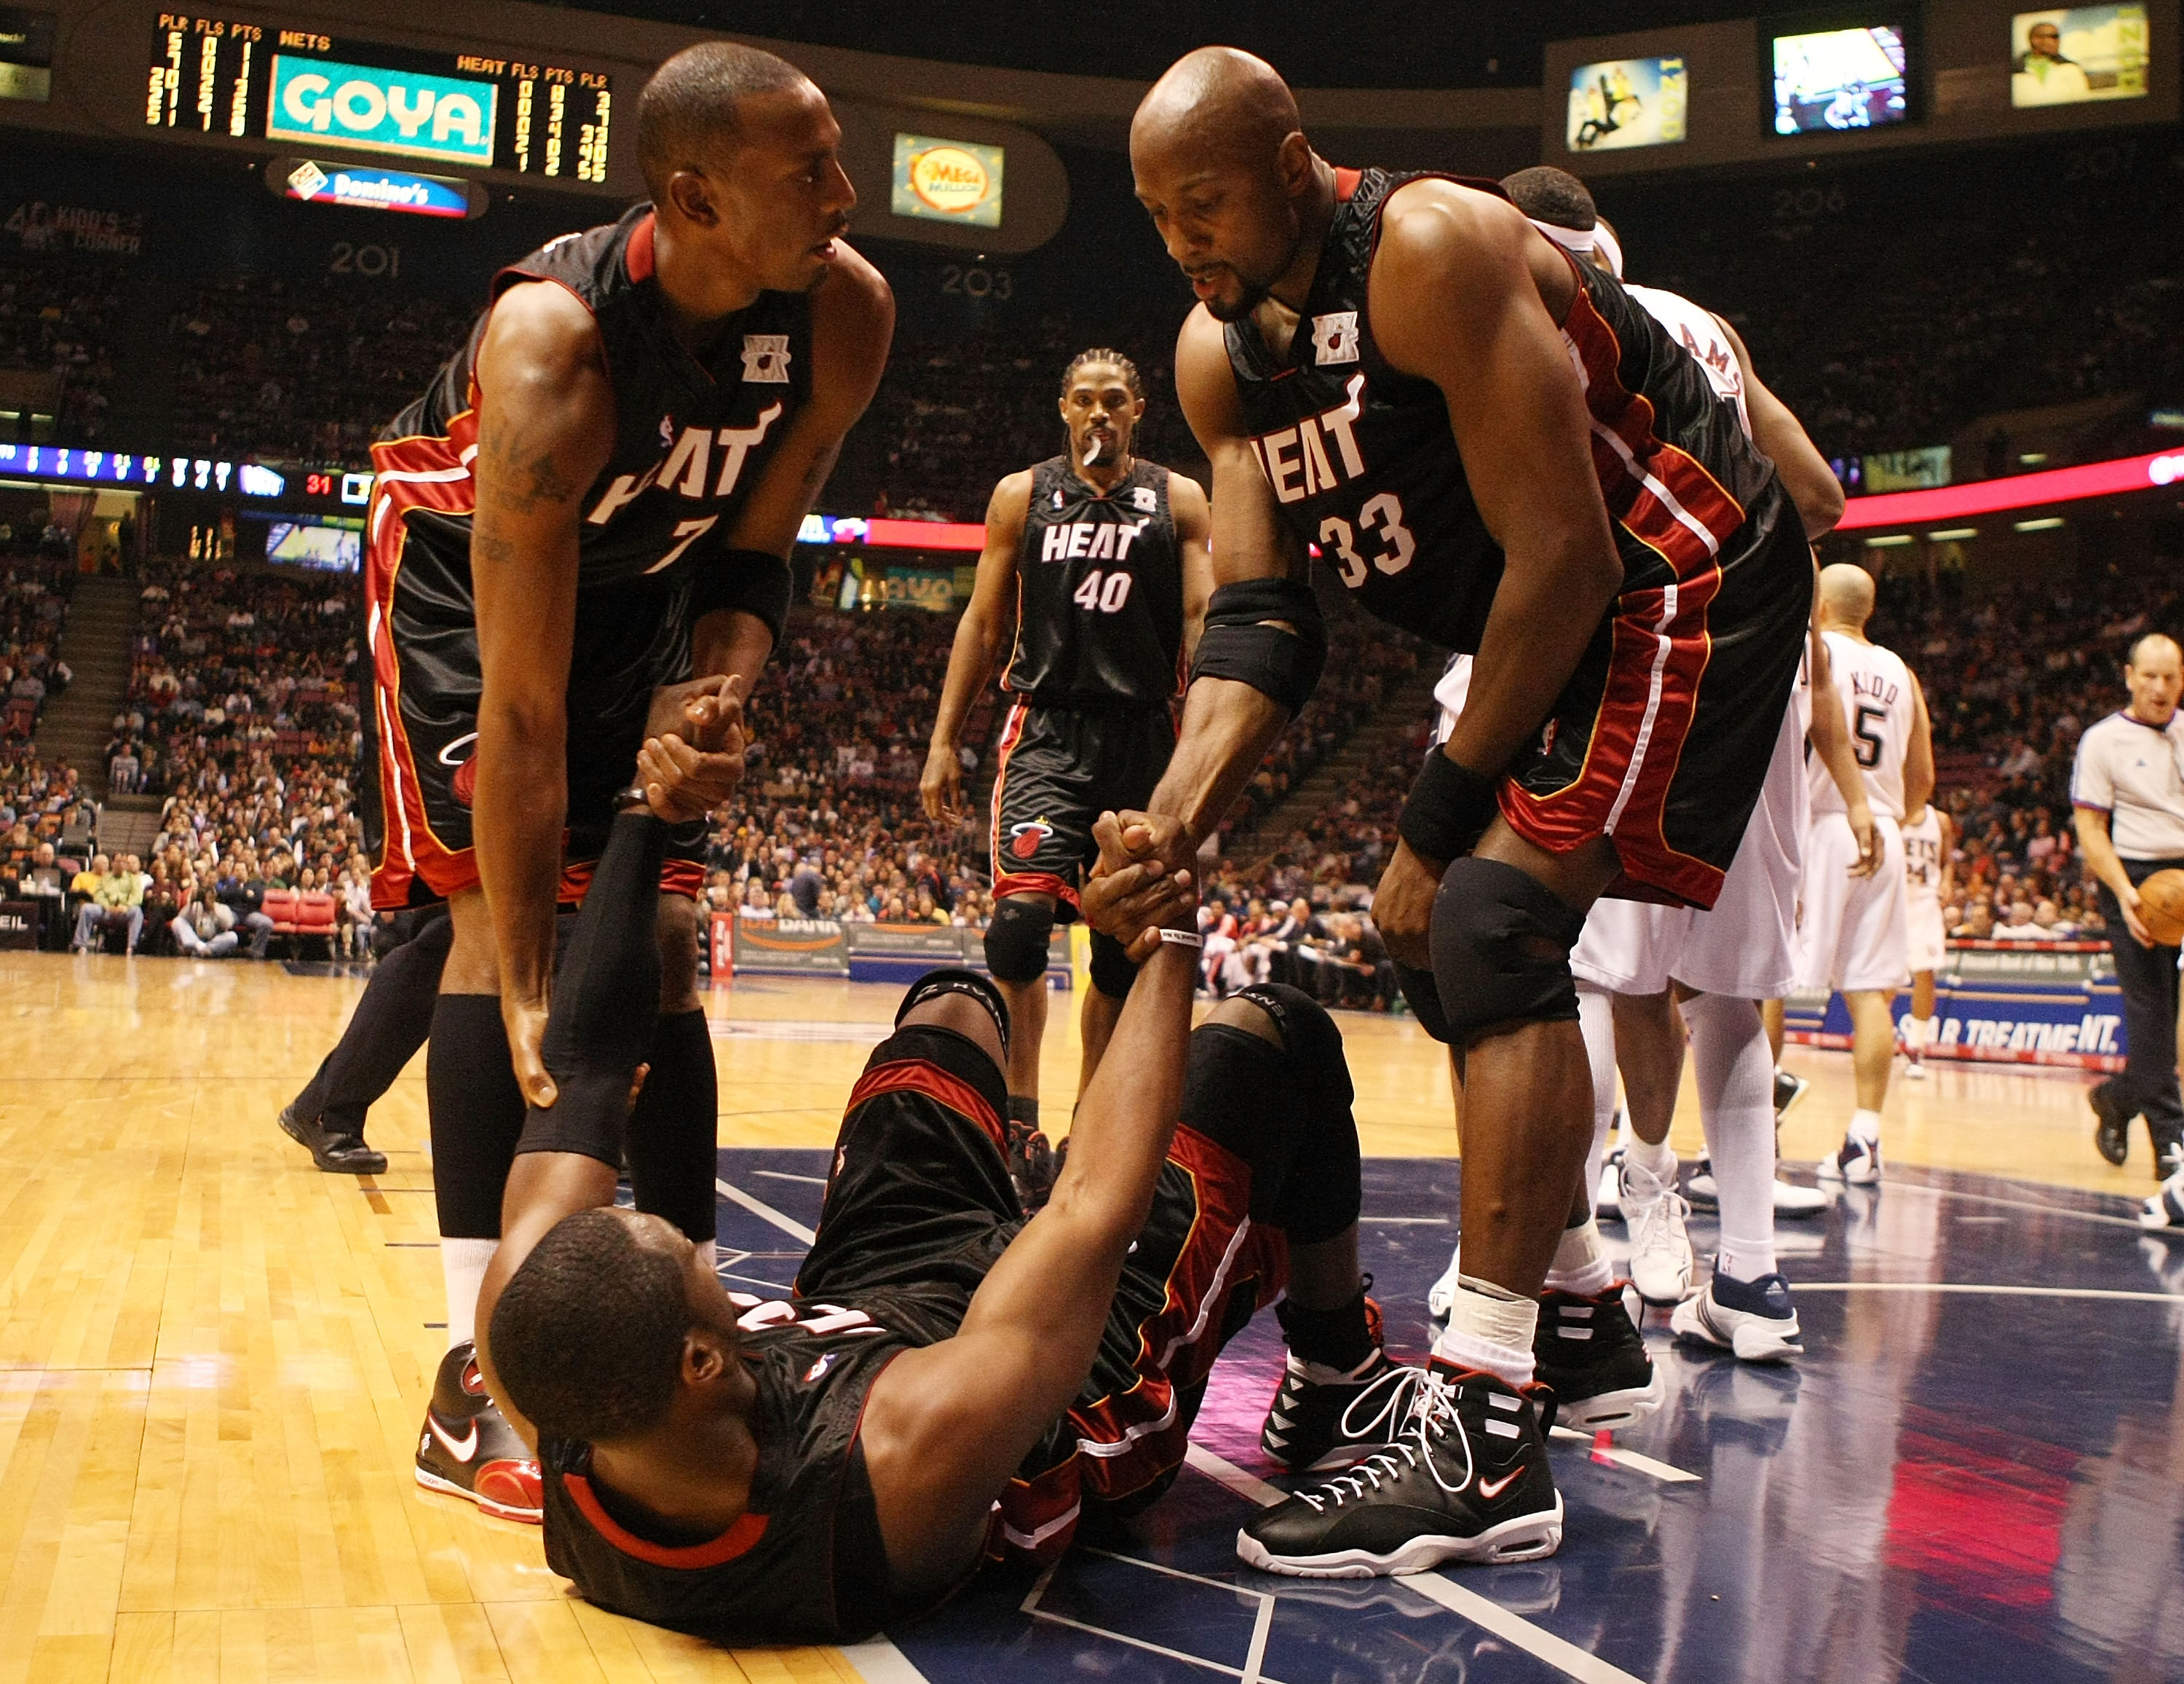 EAST RUTHERFORD, NJ - NOVEMBER 17: Dwyane Wade #3 of the Miami Heat is helped up by Anfernee Hardaway #7 and Alonzo Mourning #33 against the New Jersey Nets during their game on November 17, 2007 at the Izod Arena in East Rutherford, New Jersey.